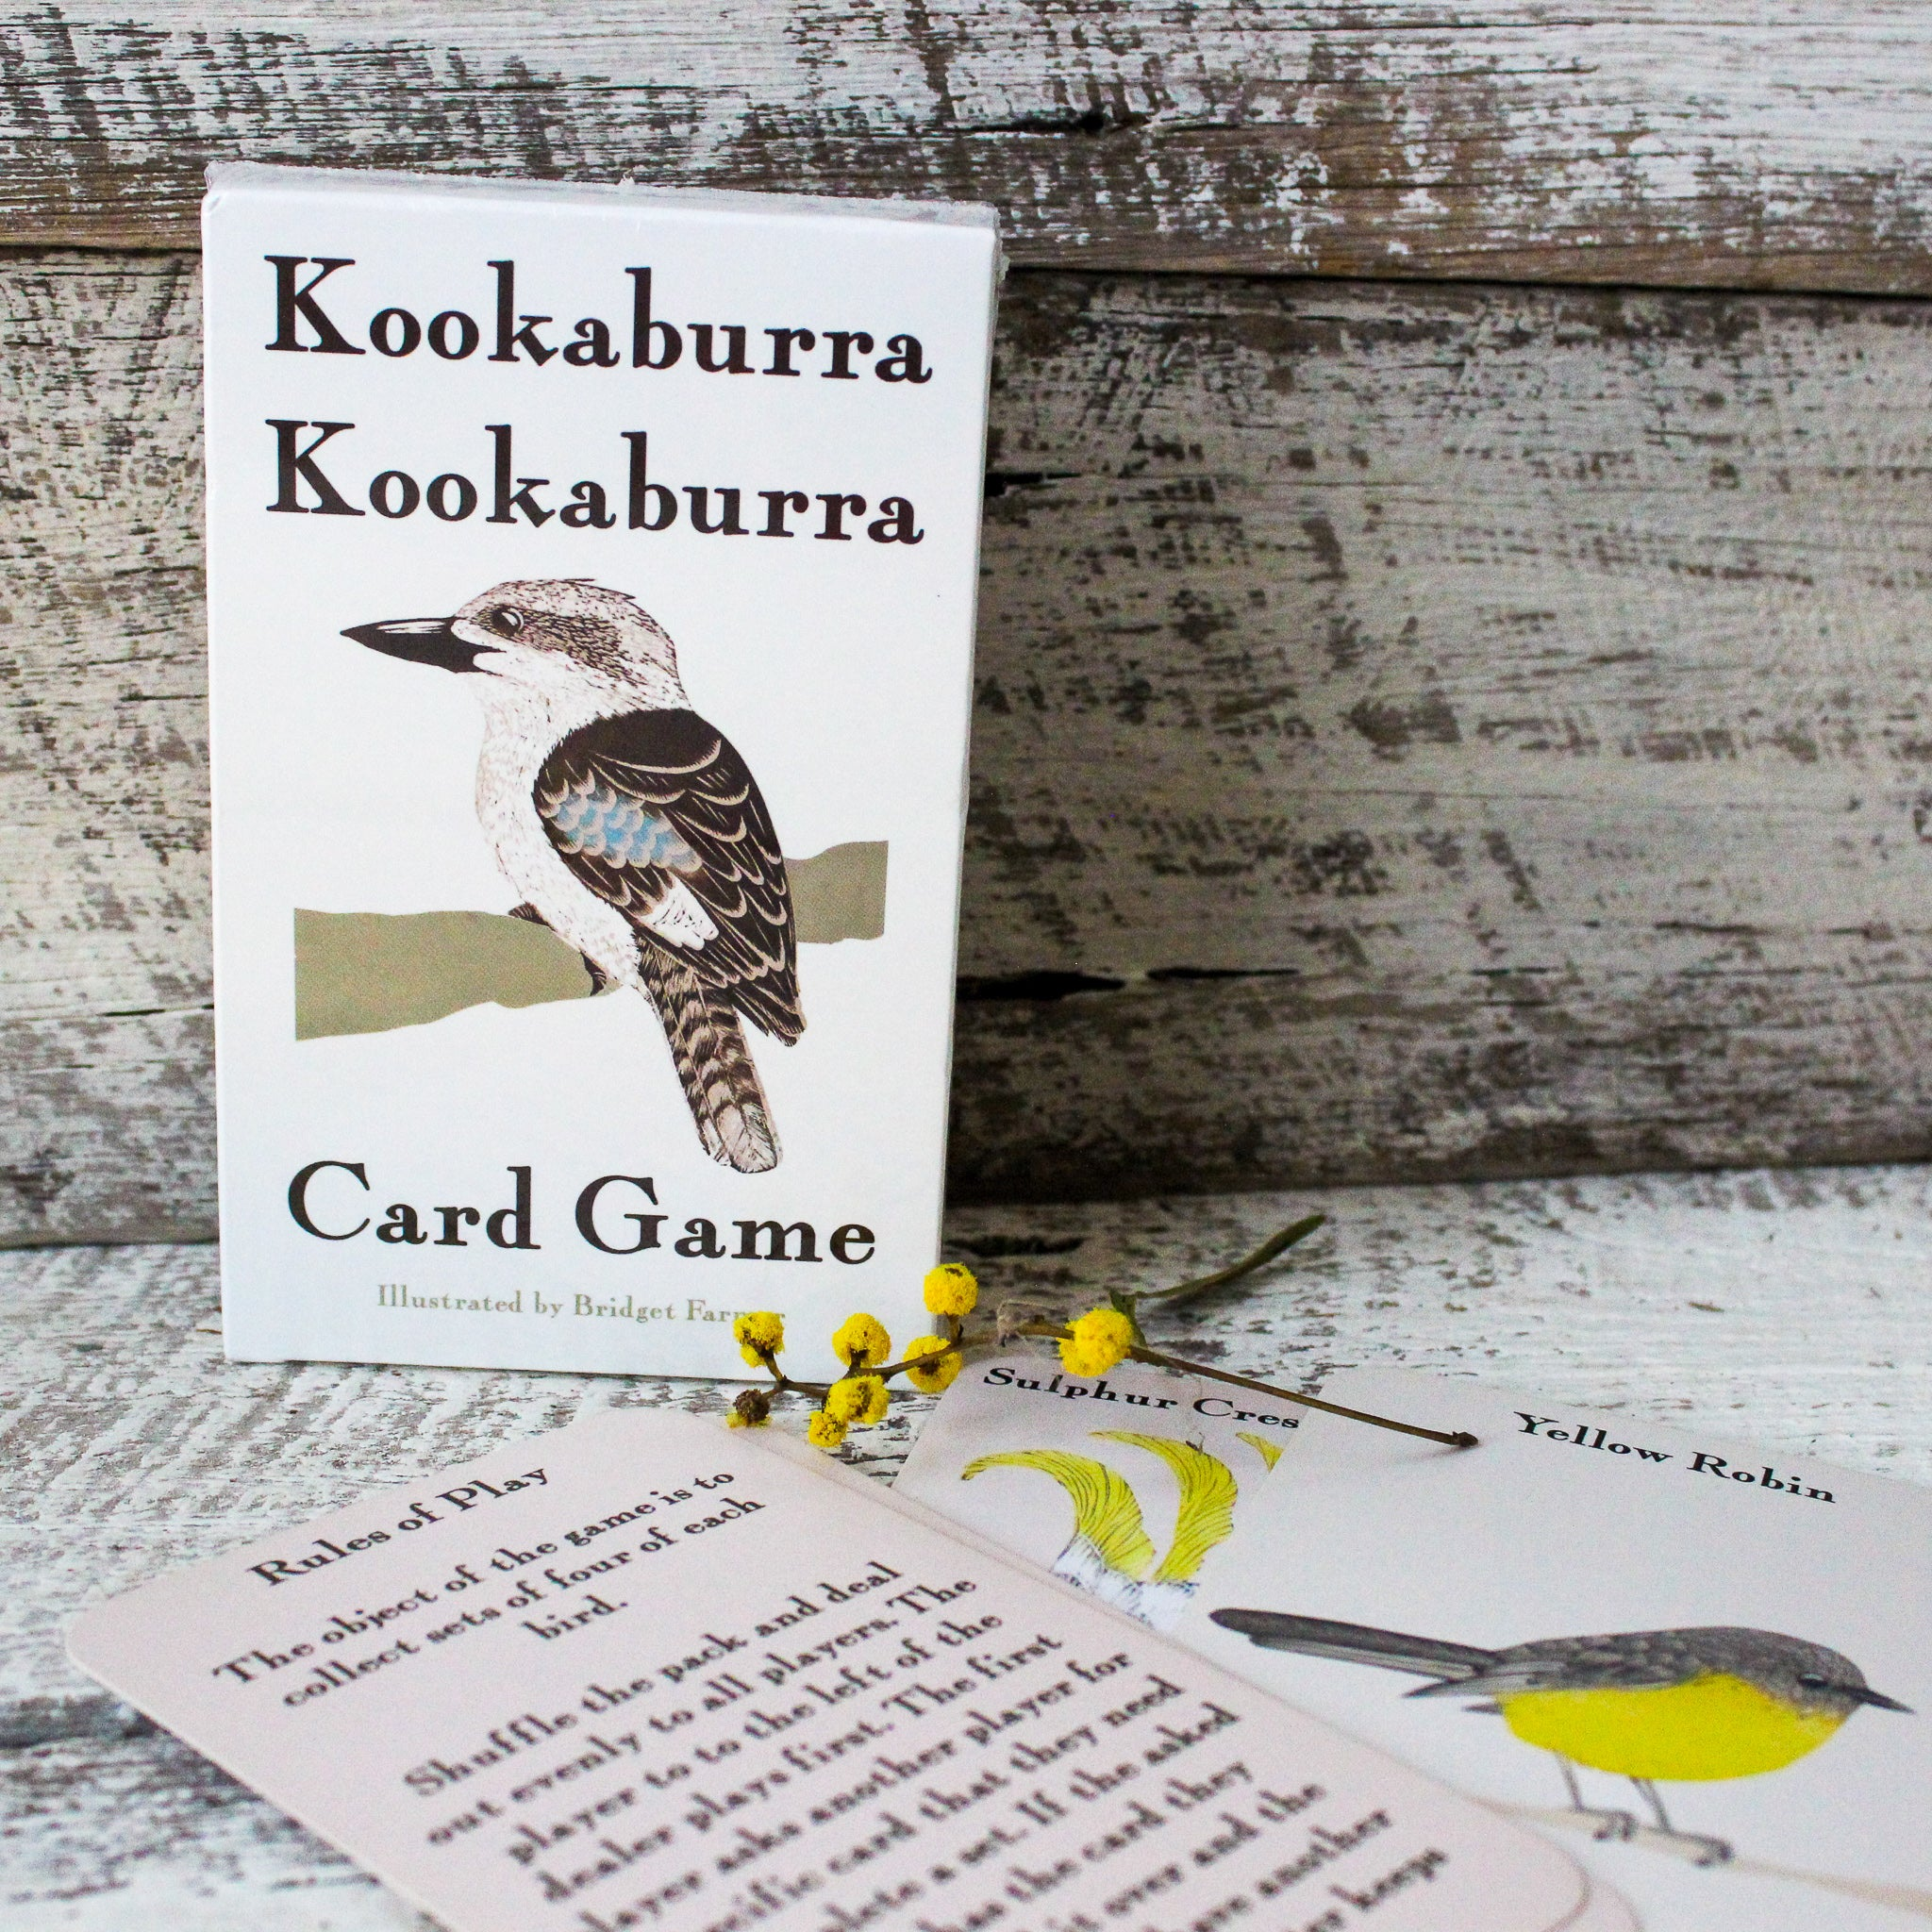 Kookaburra Card Game